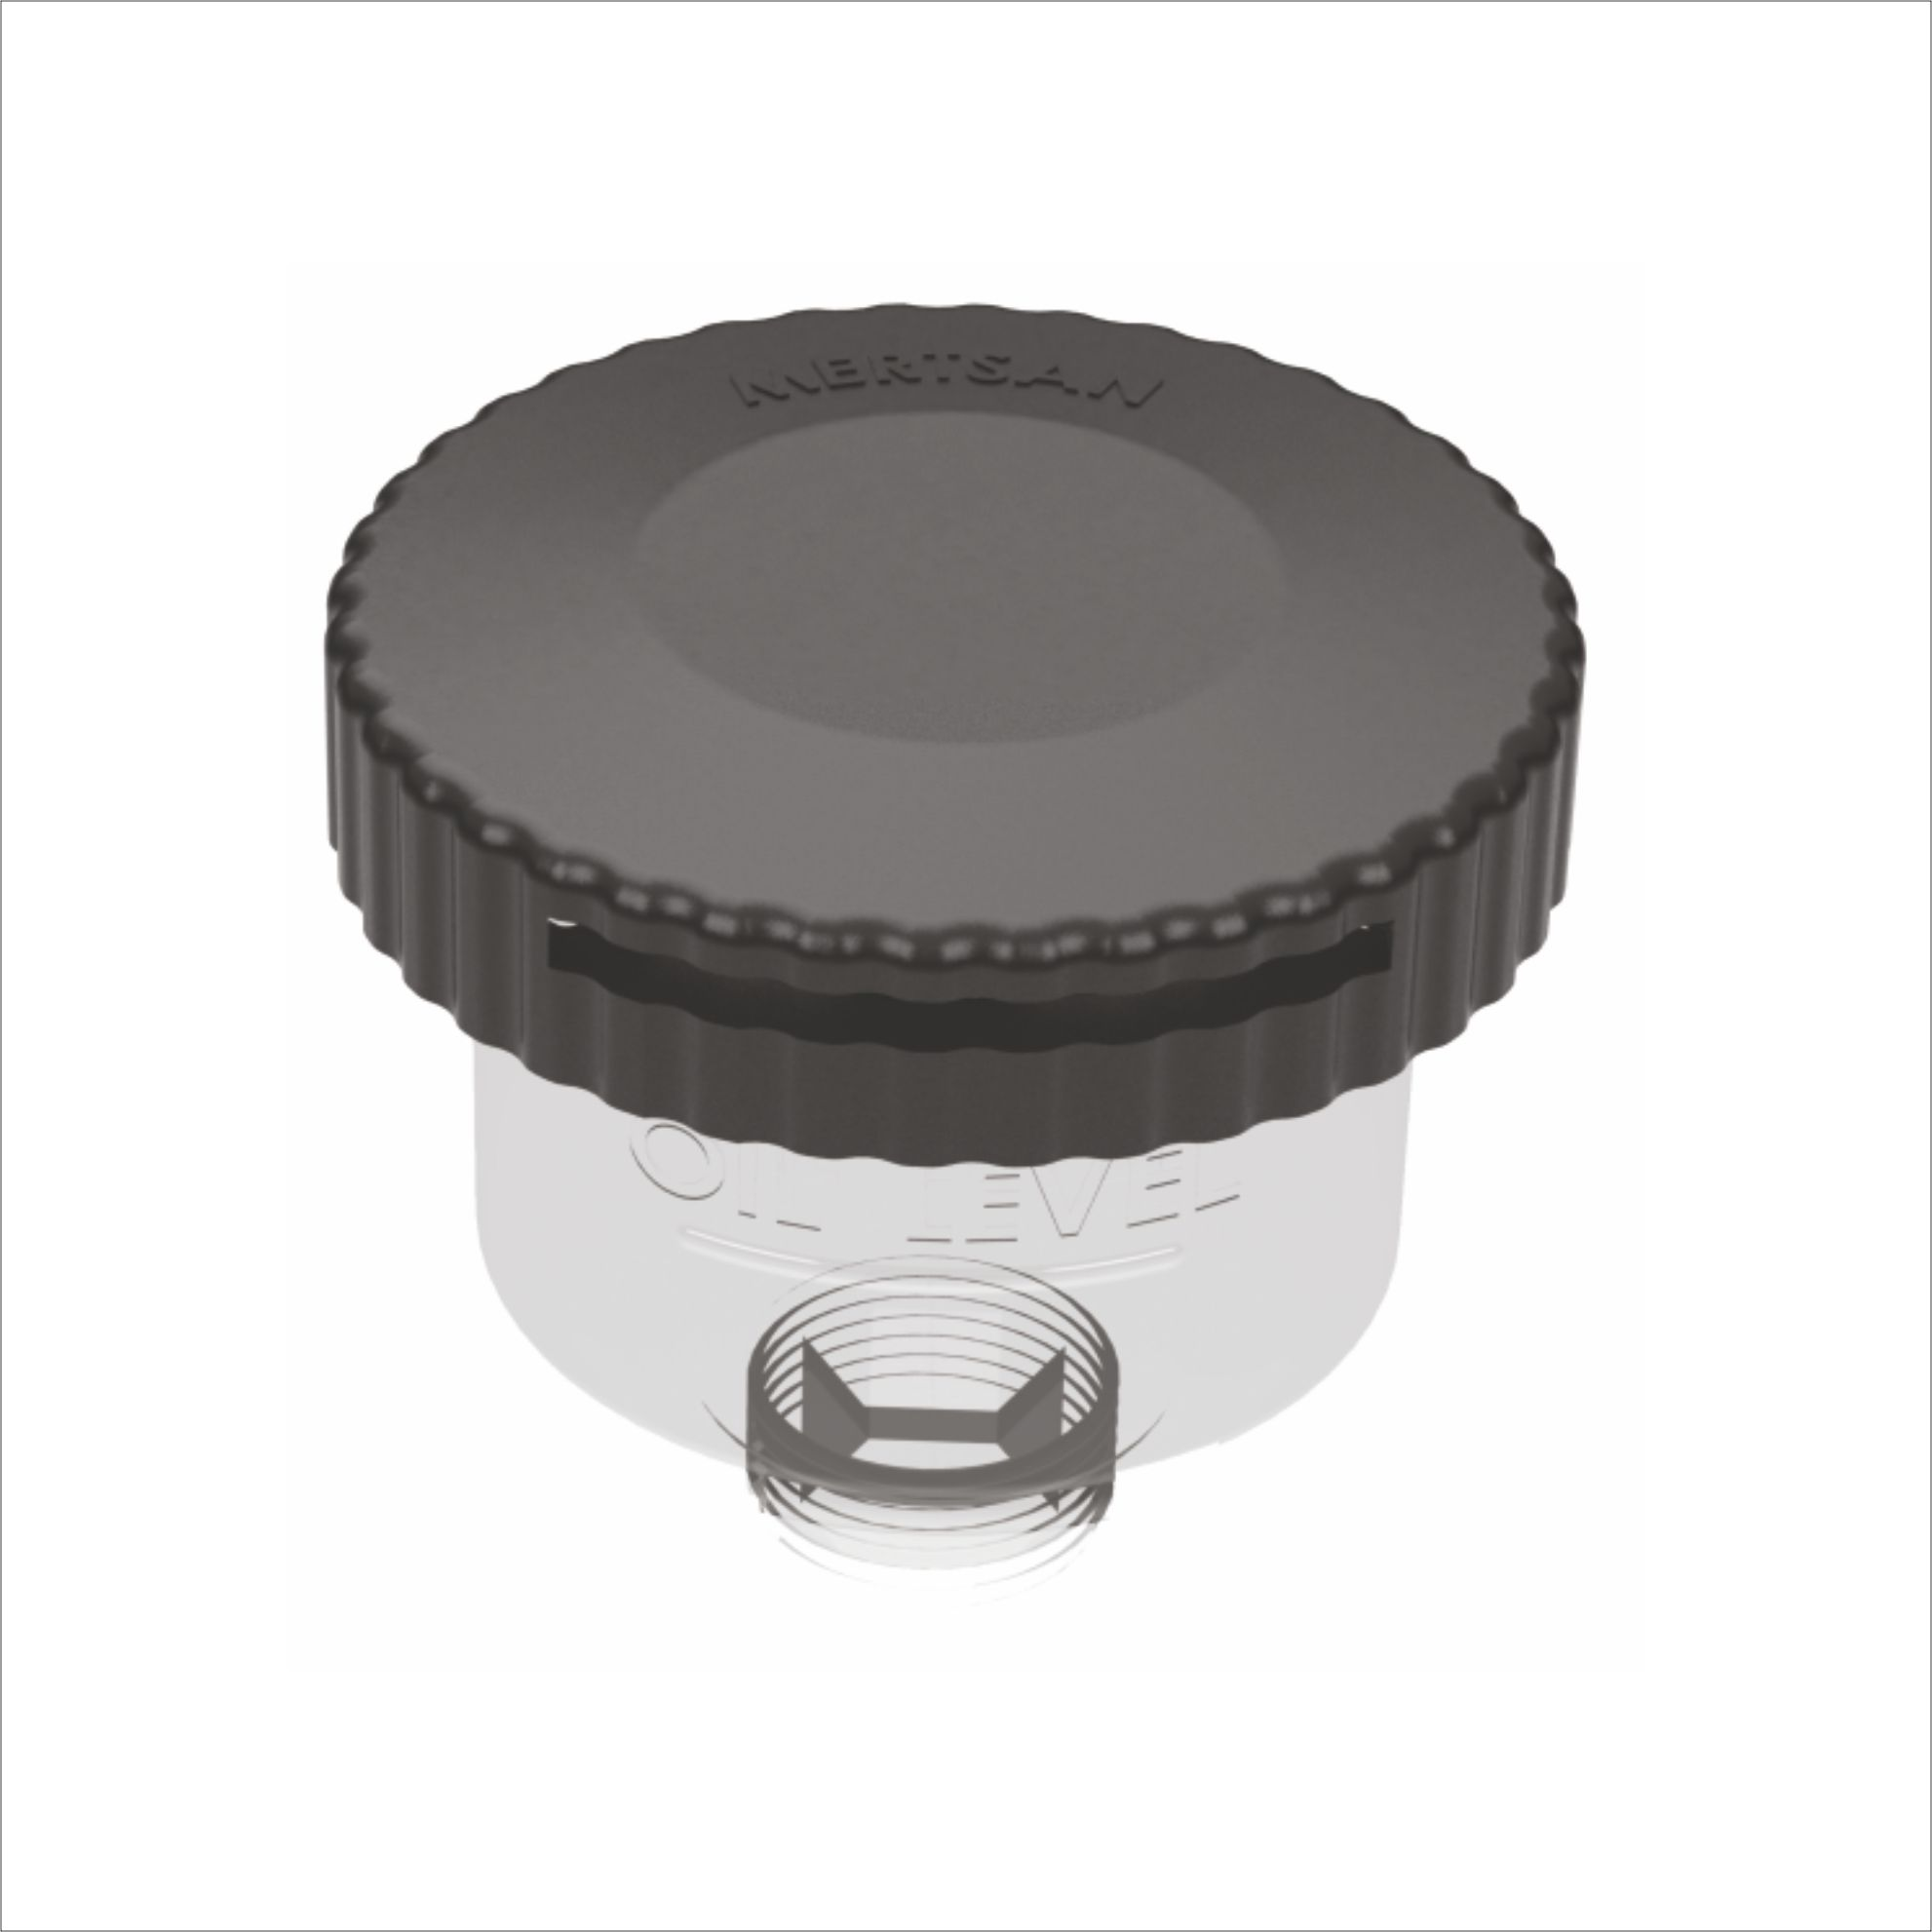 OILCAN FOR 145/496 PUMPS